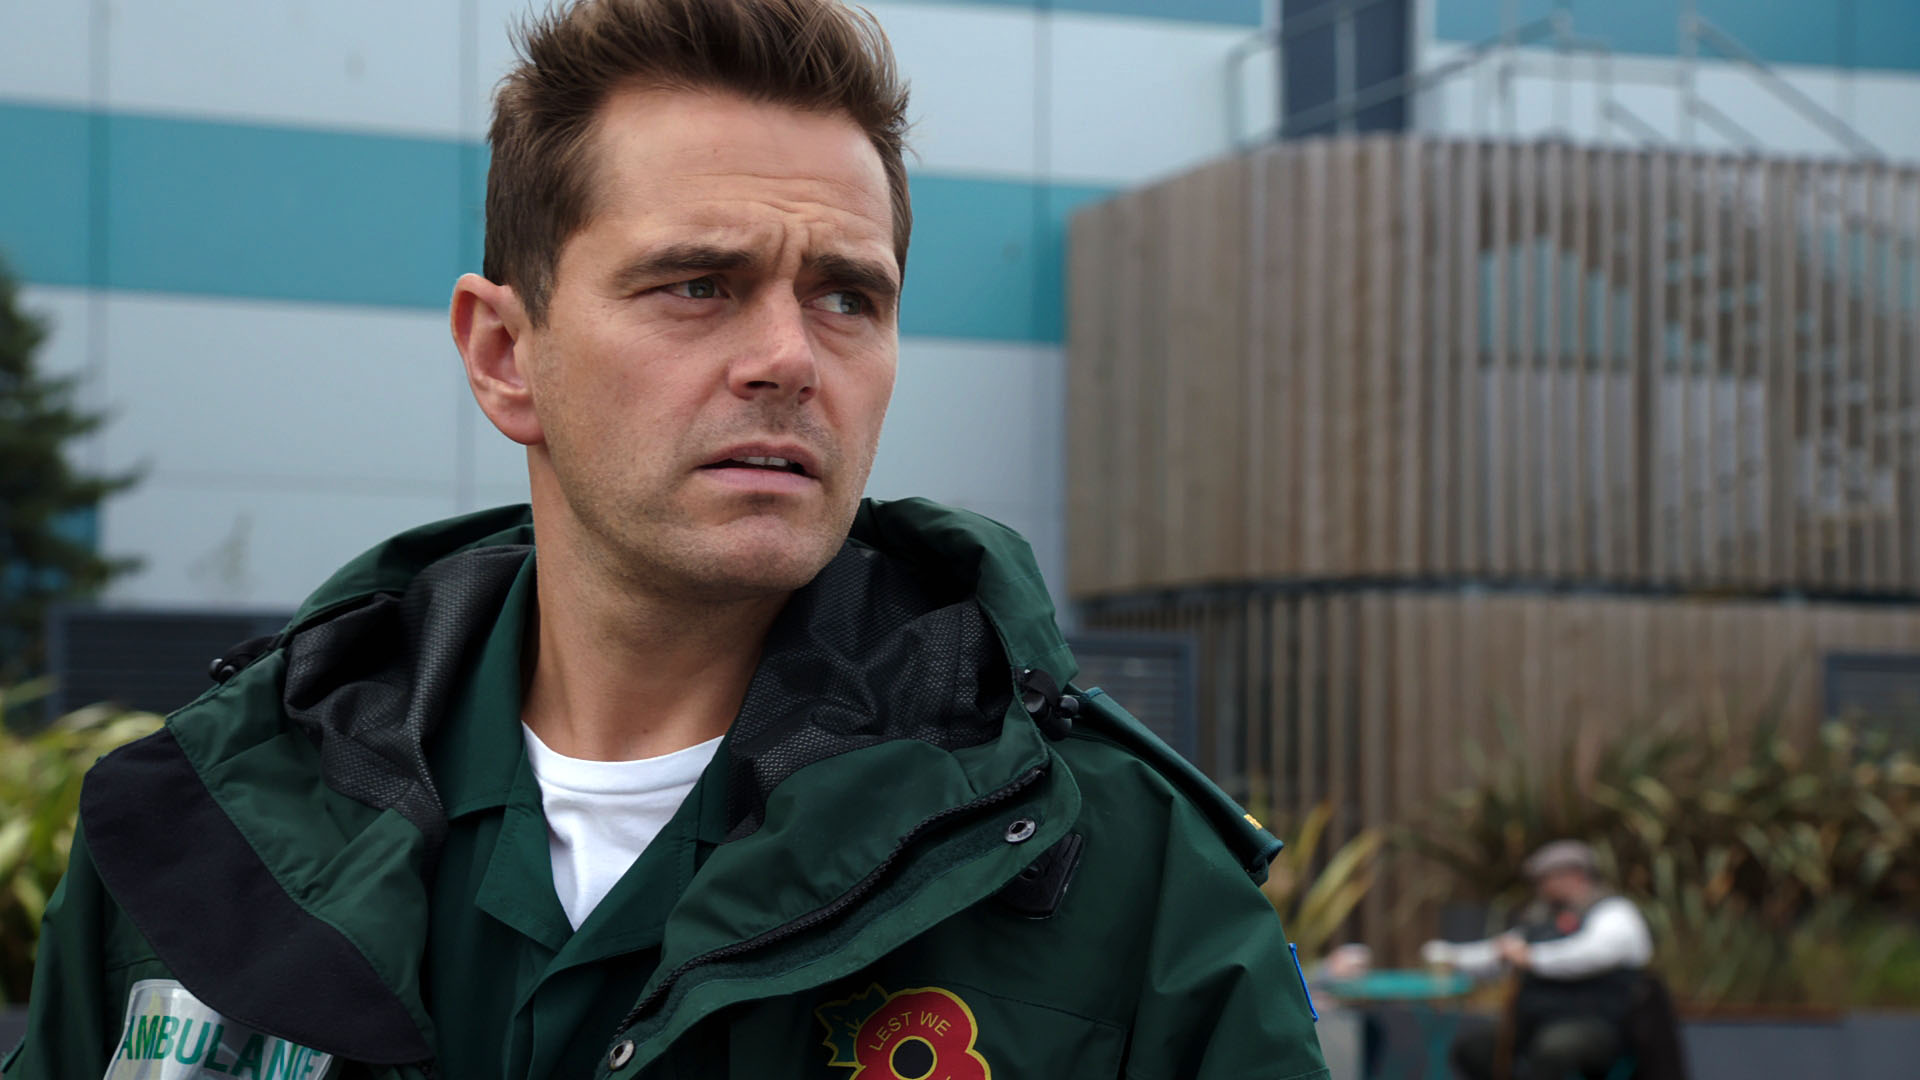 Casualty review with spoilers: A new nurse, and new hope for Iain